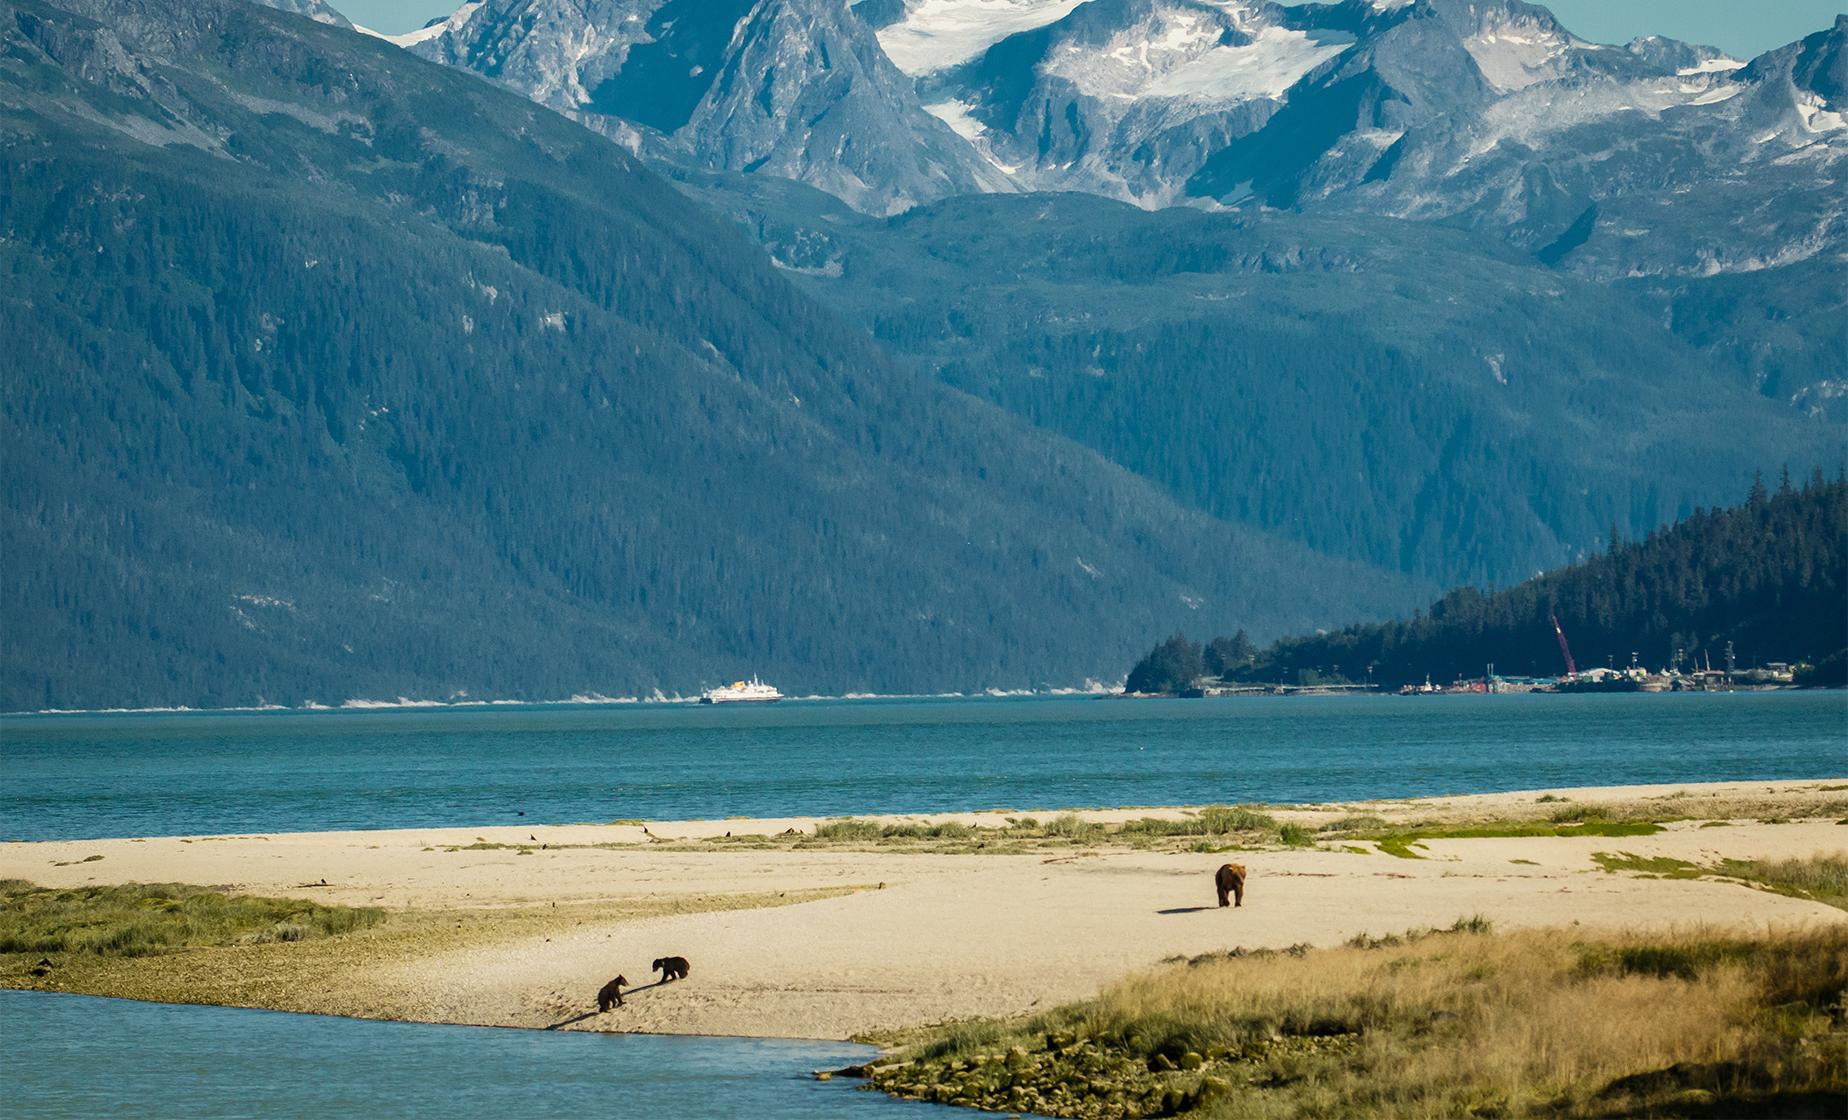 Wildlife & Wilderness Excursion in Haines from Skagway, Alaska